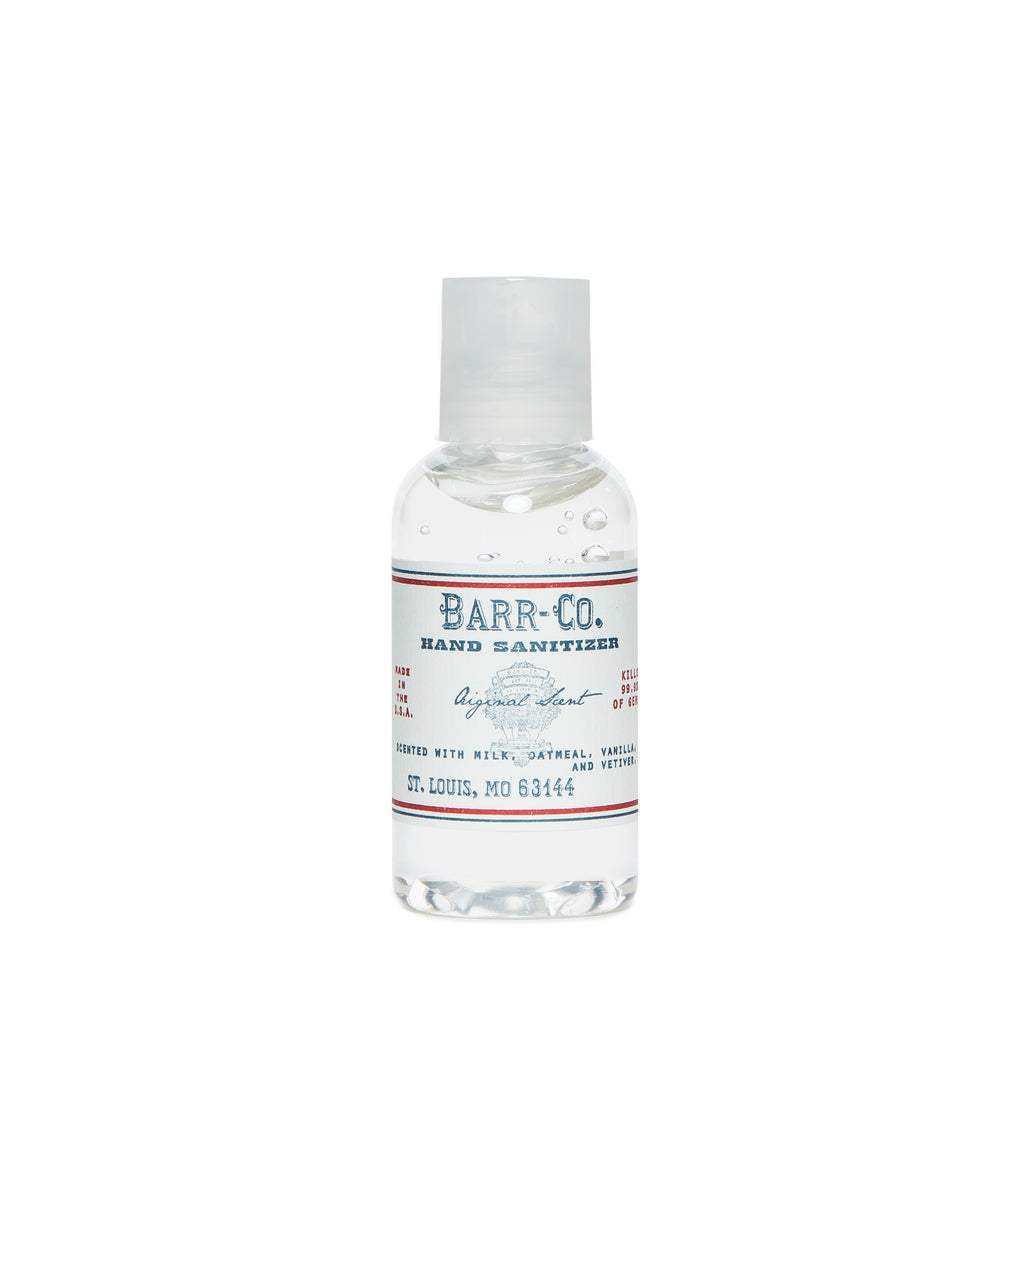 Barr-Co Original Scent Hand Sanitizer